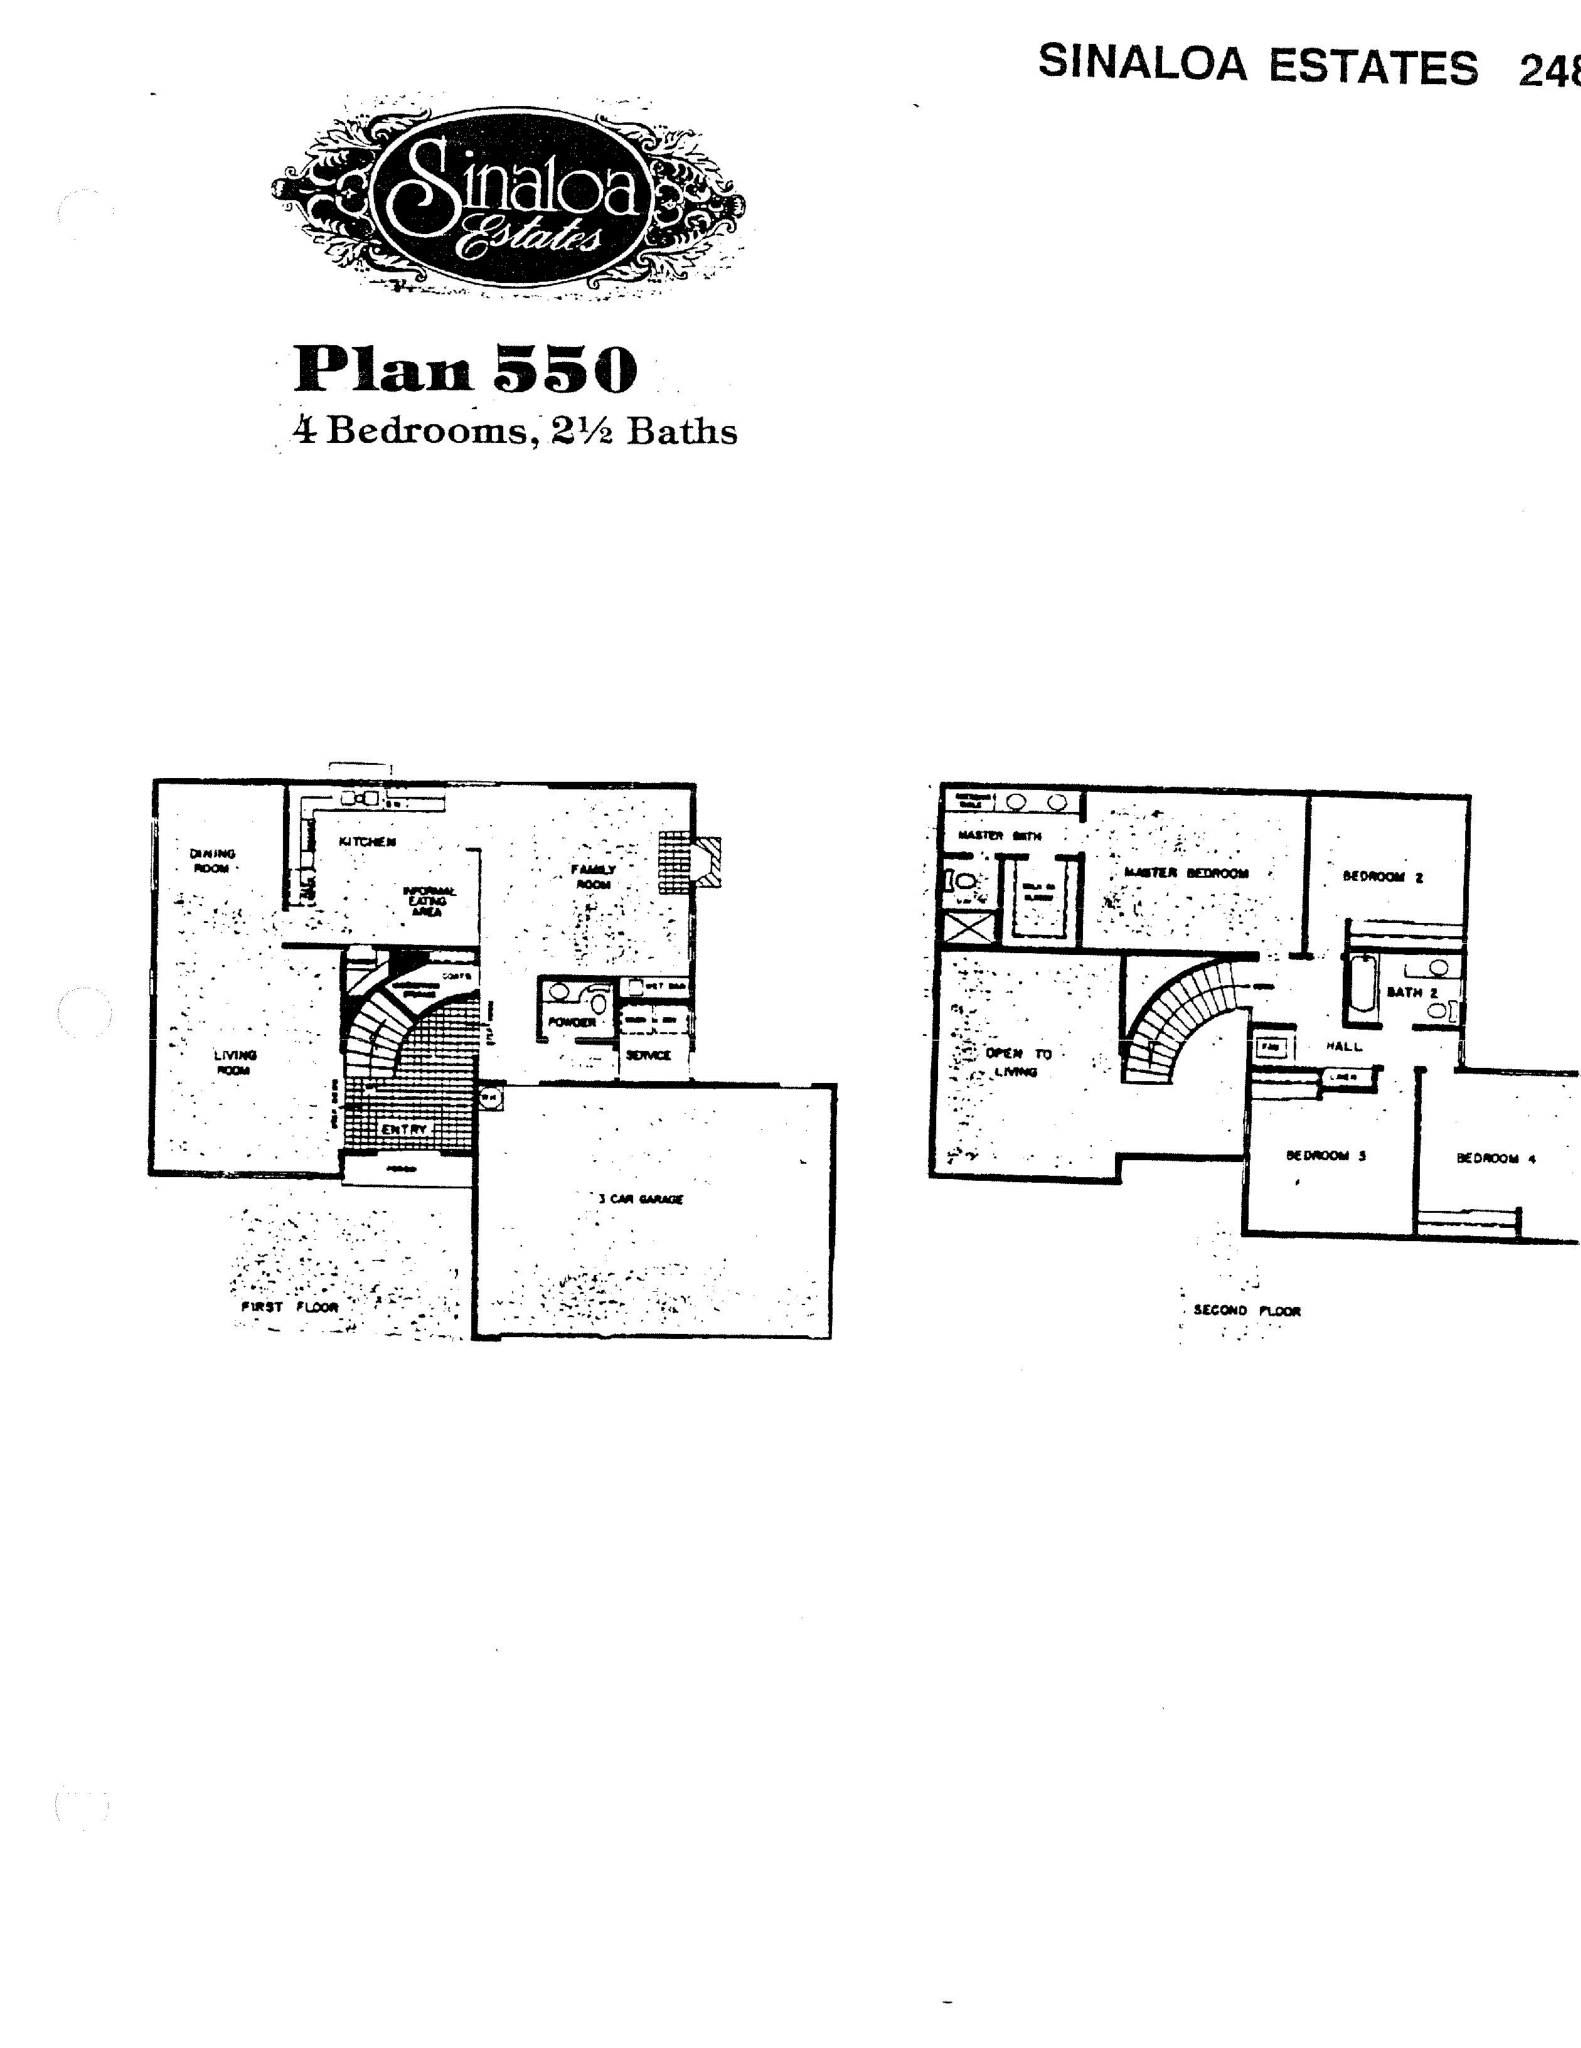 Sinaloa Estates - Plan 550